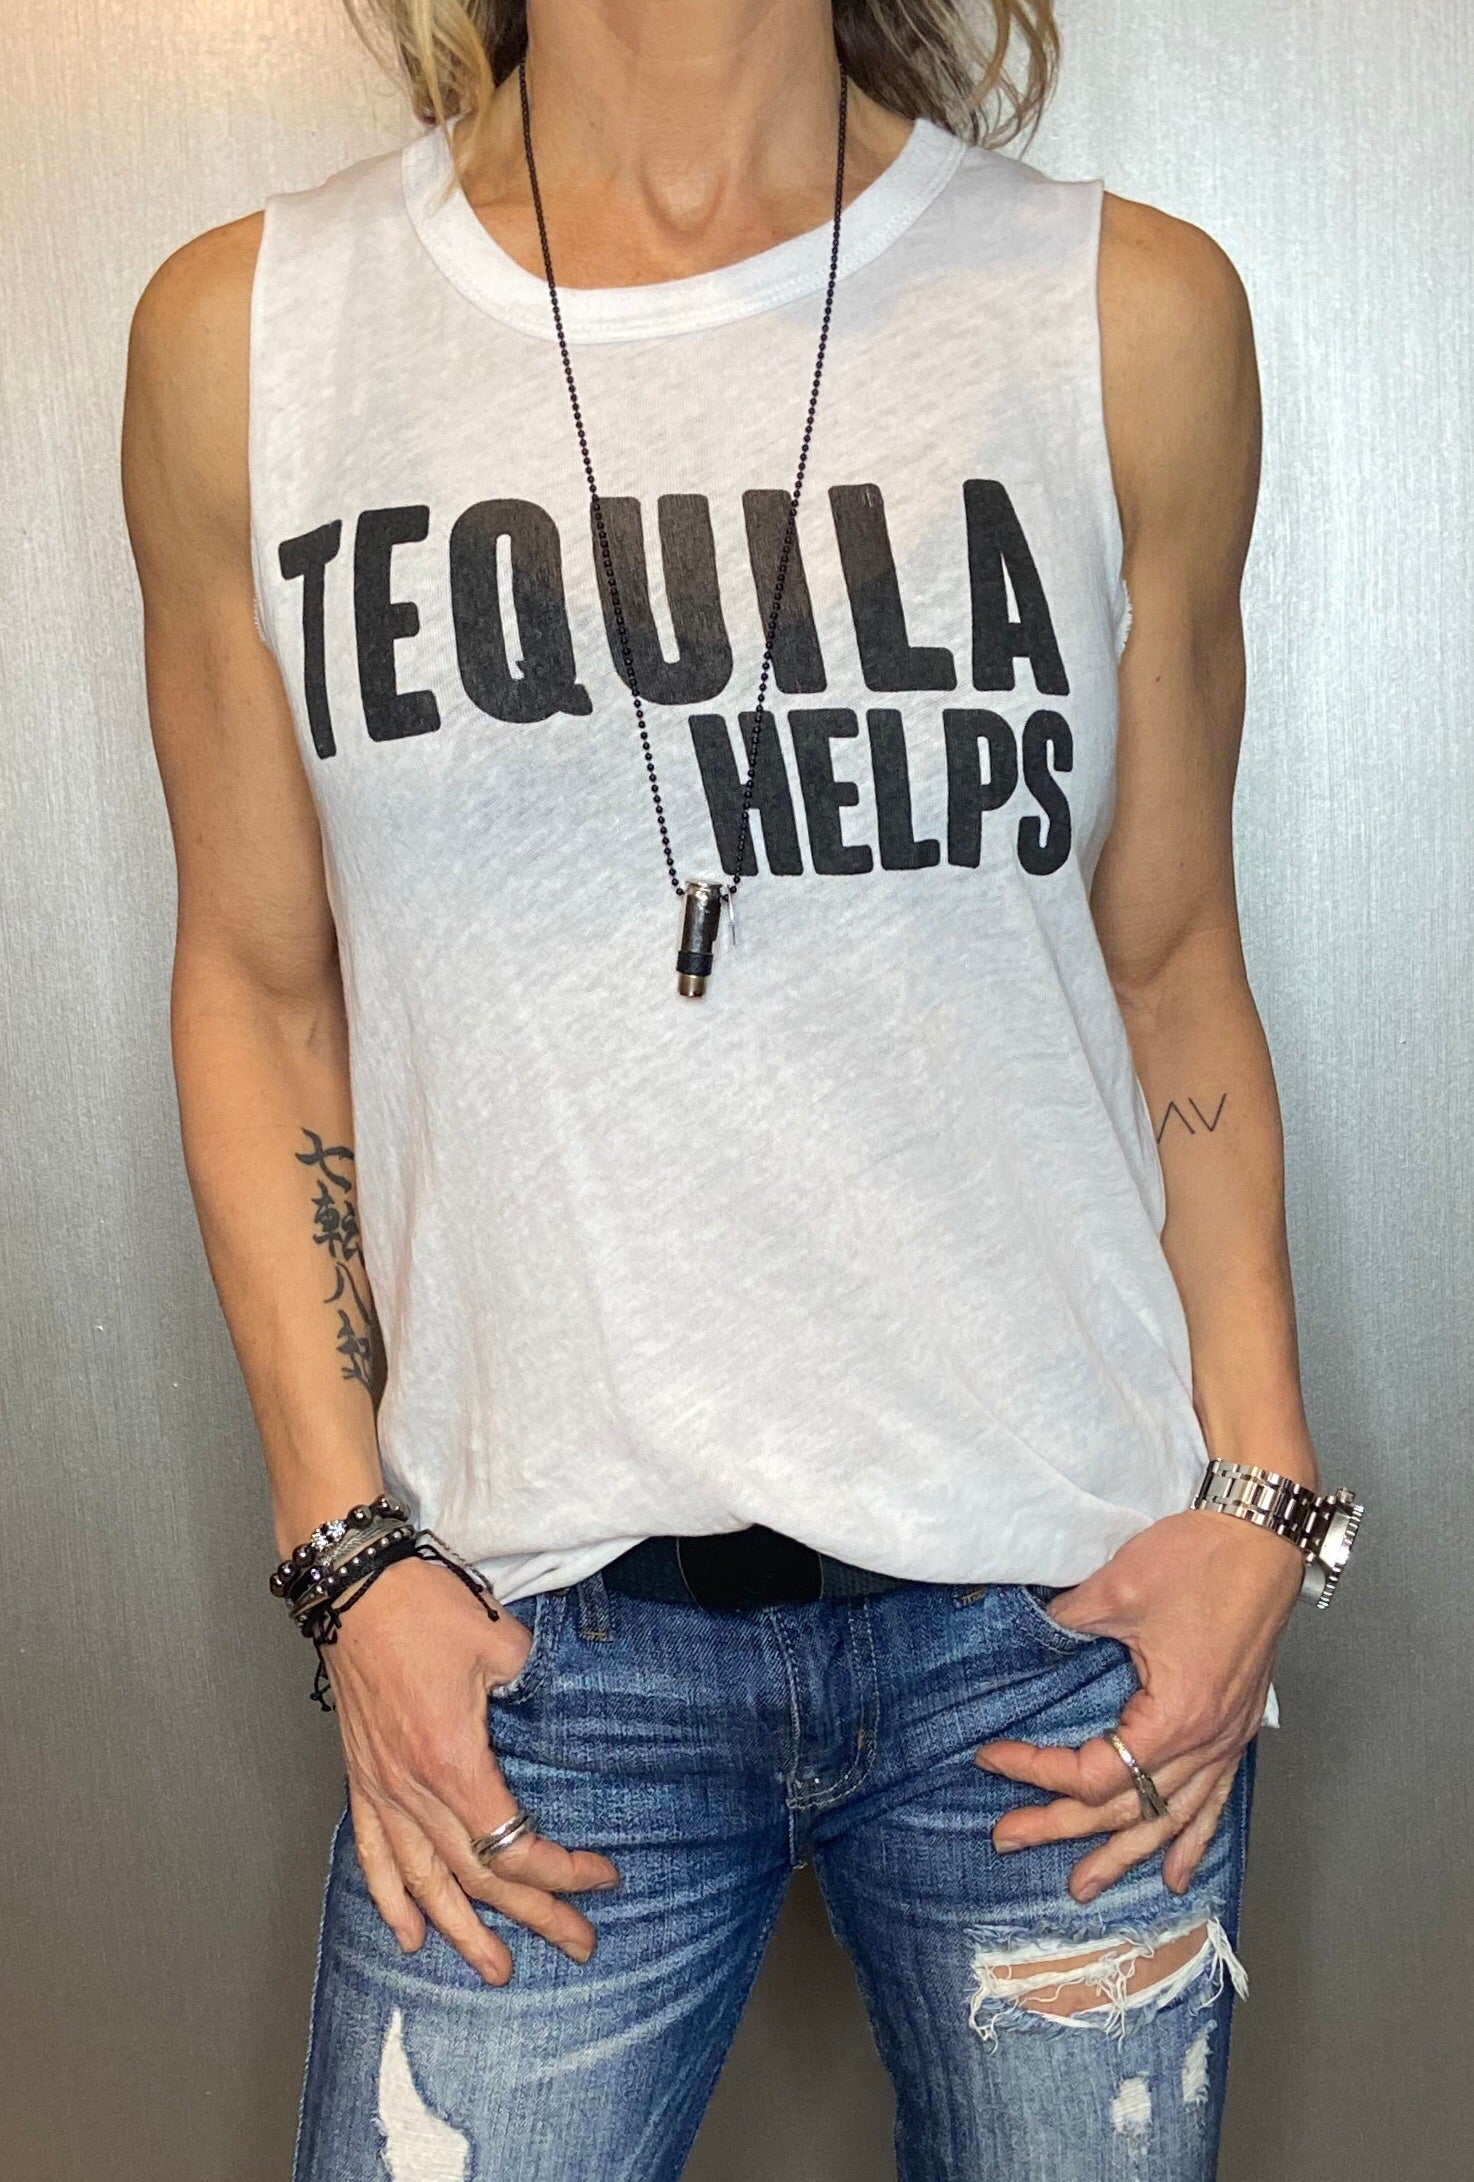 Tequila helps graphic tee